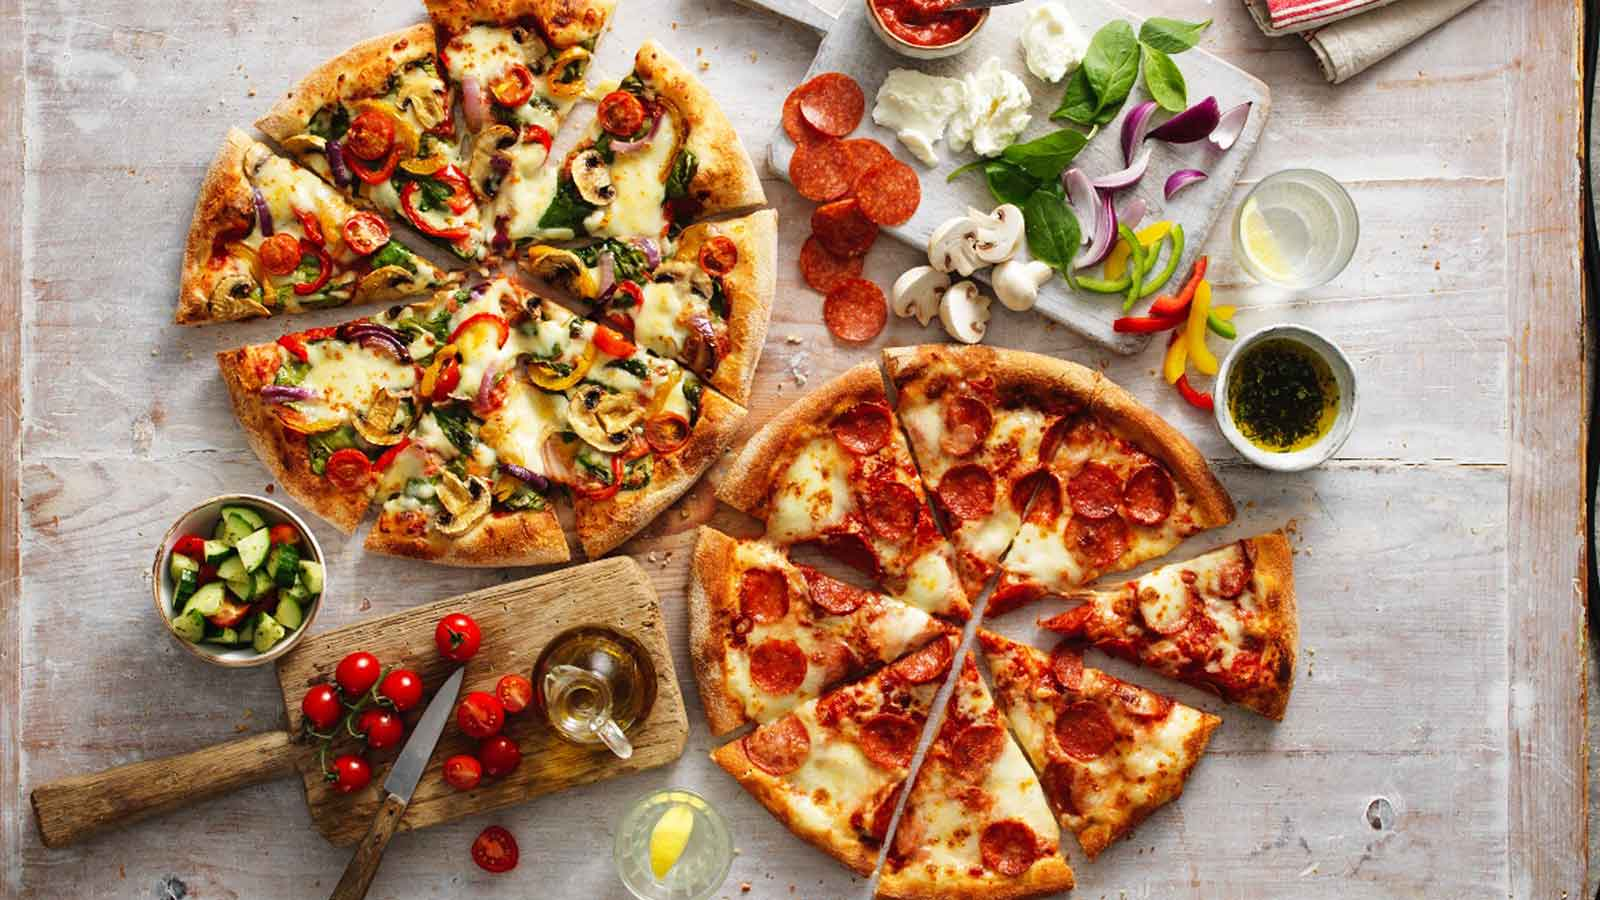 Pizza Hut Malta launches new style of handcrafted pizza